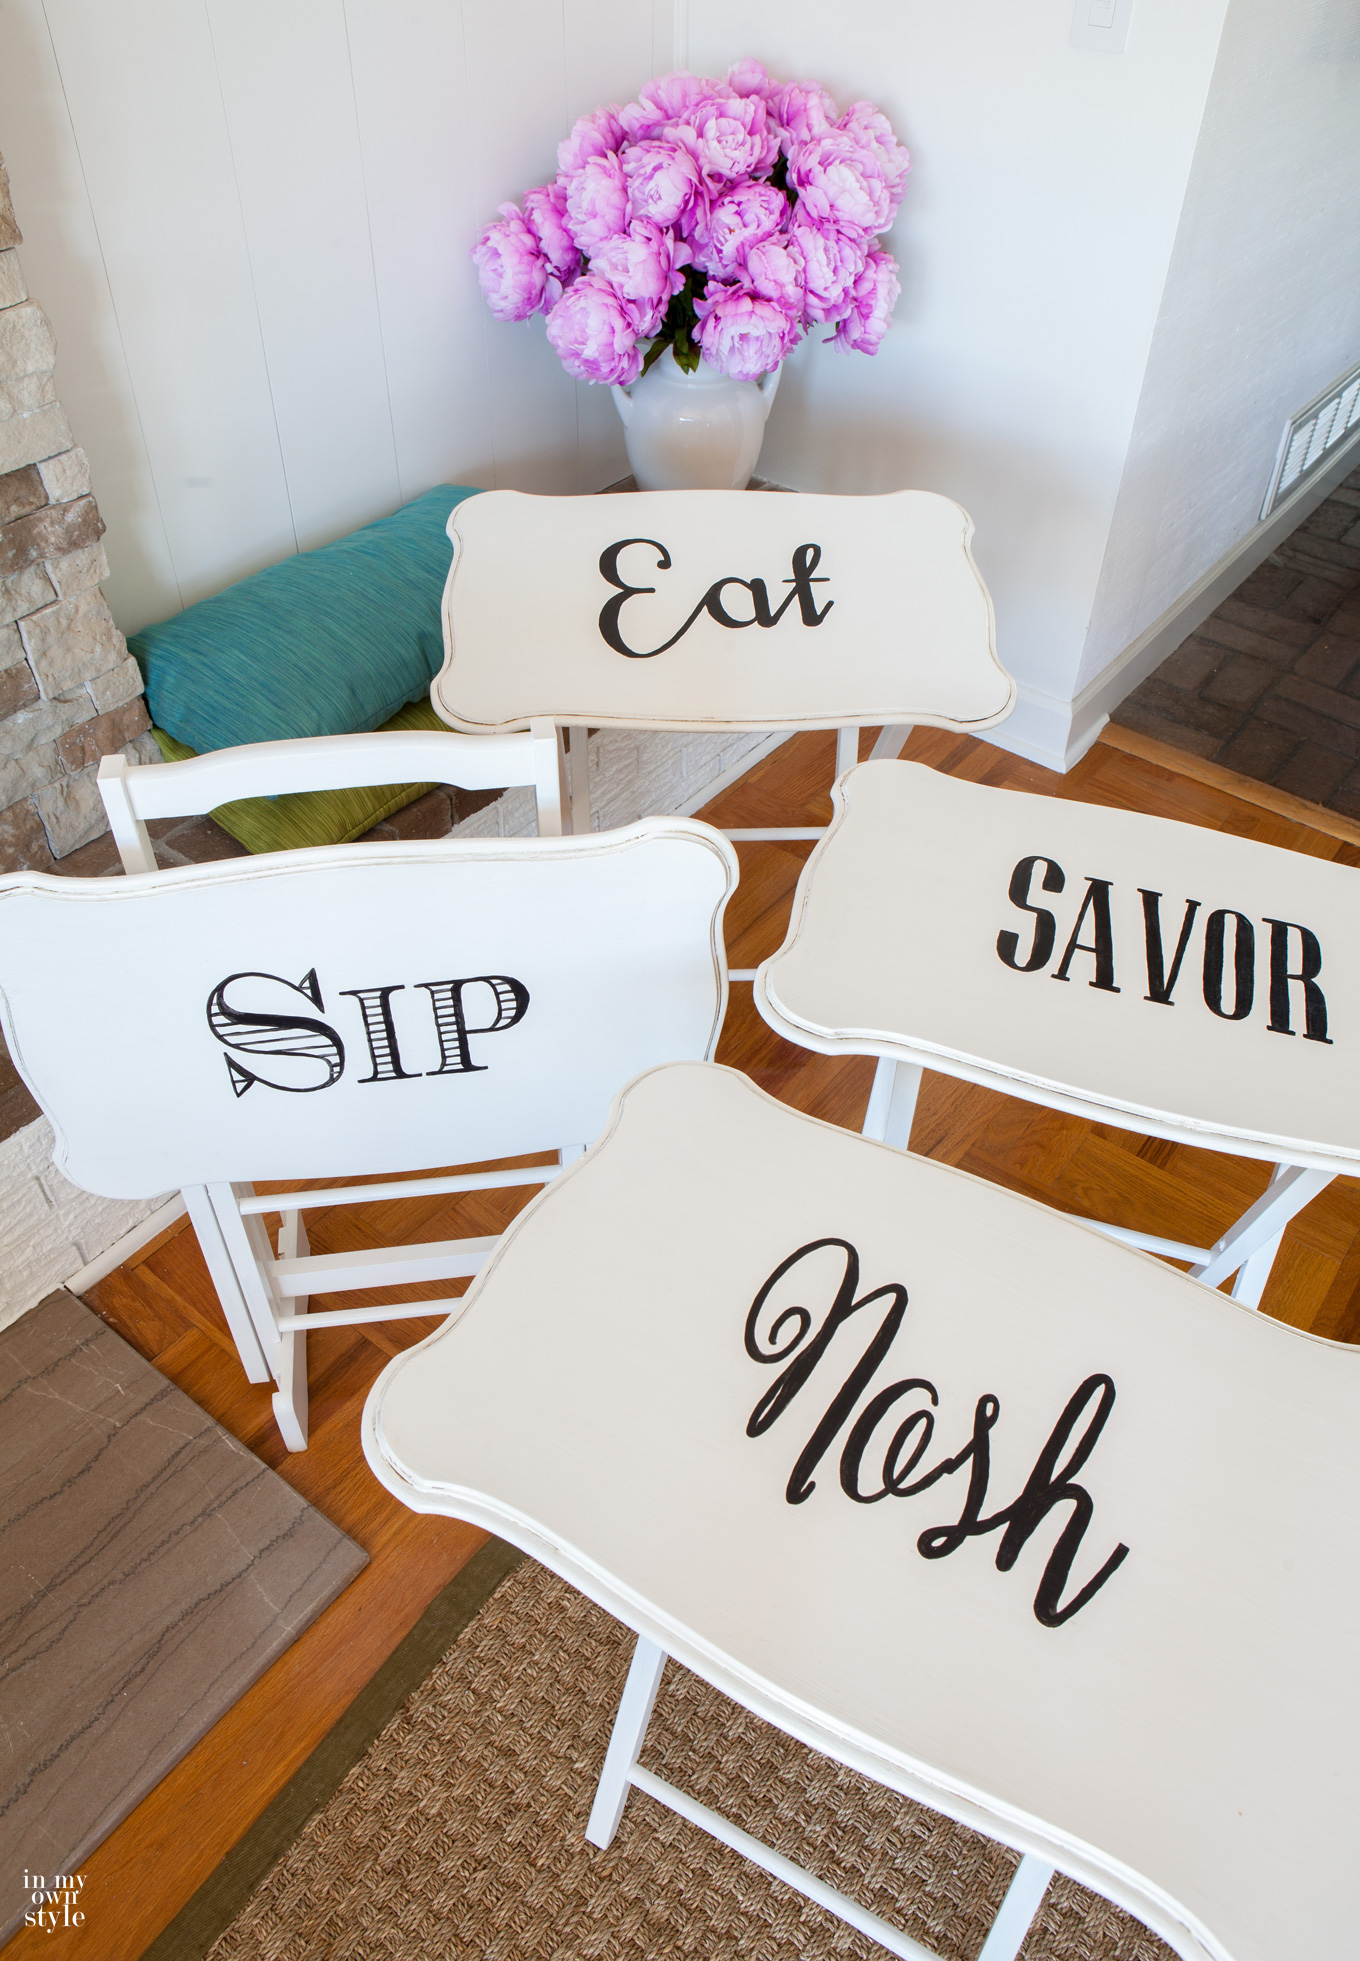 How-to-makeover-furniture-with-typography-image-tranfers